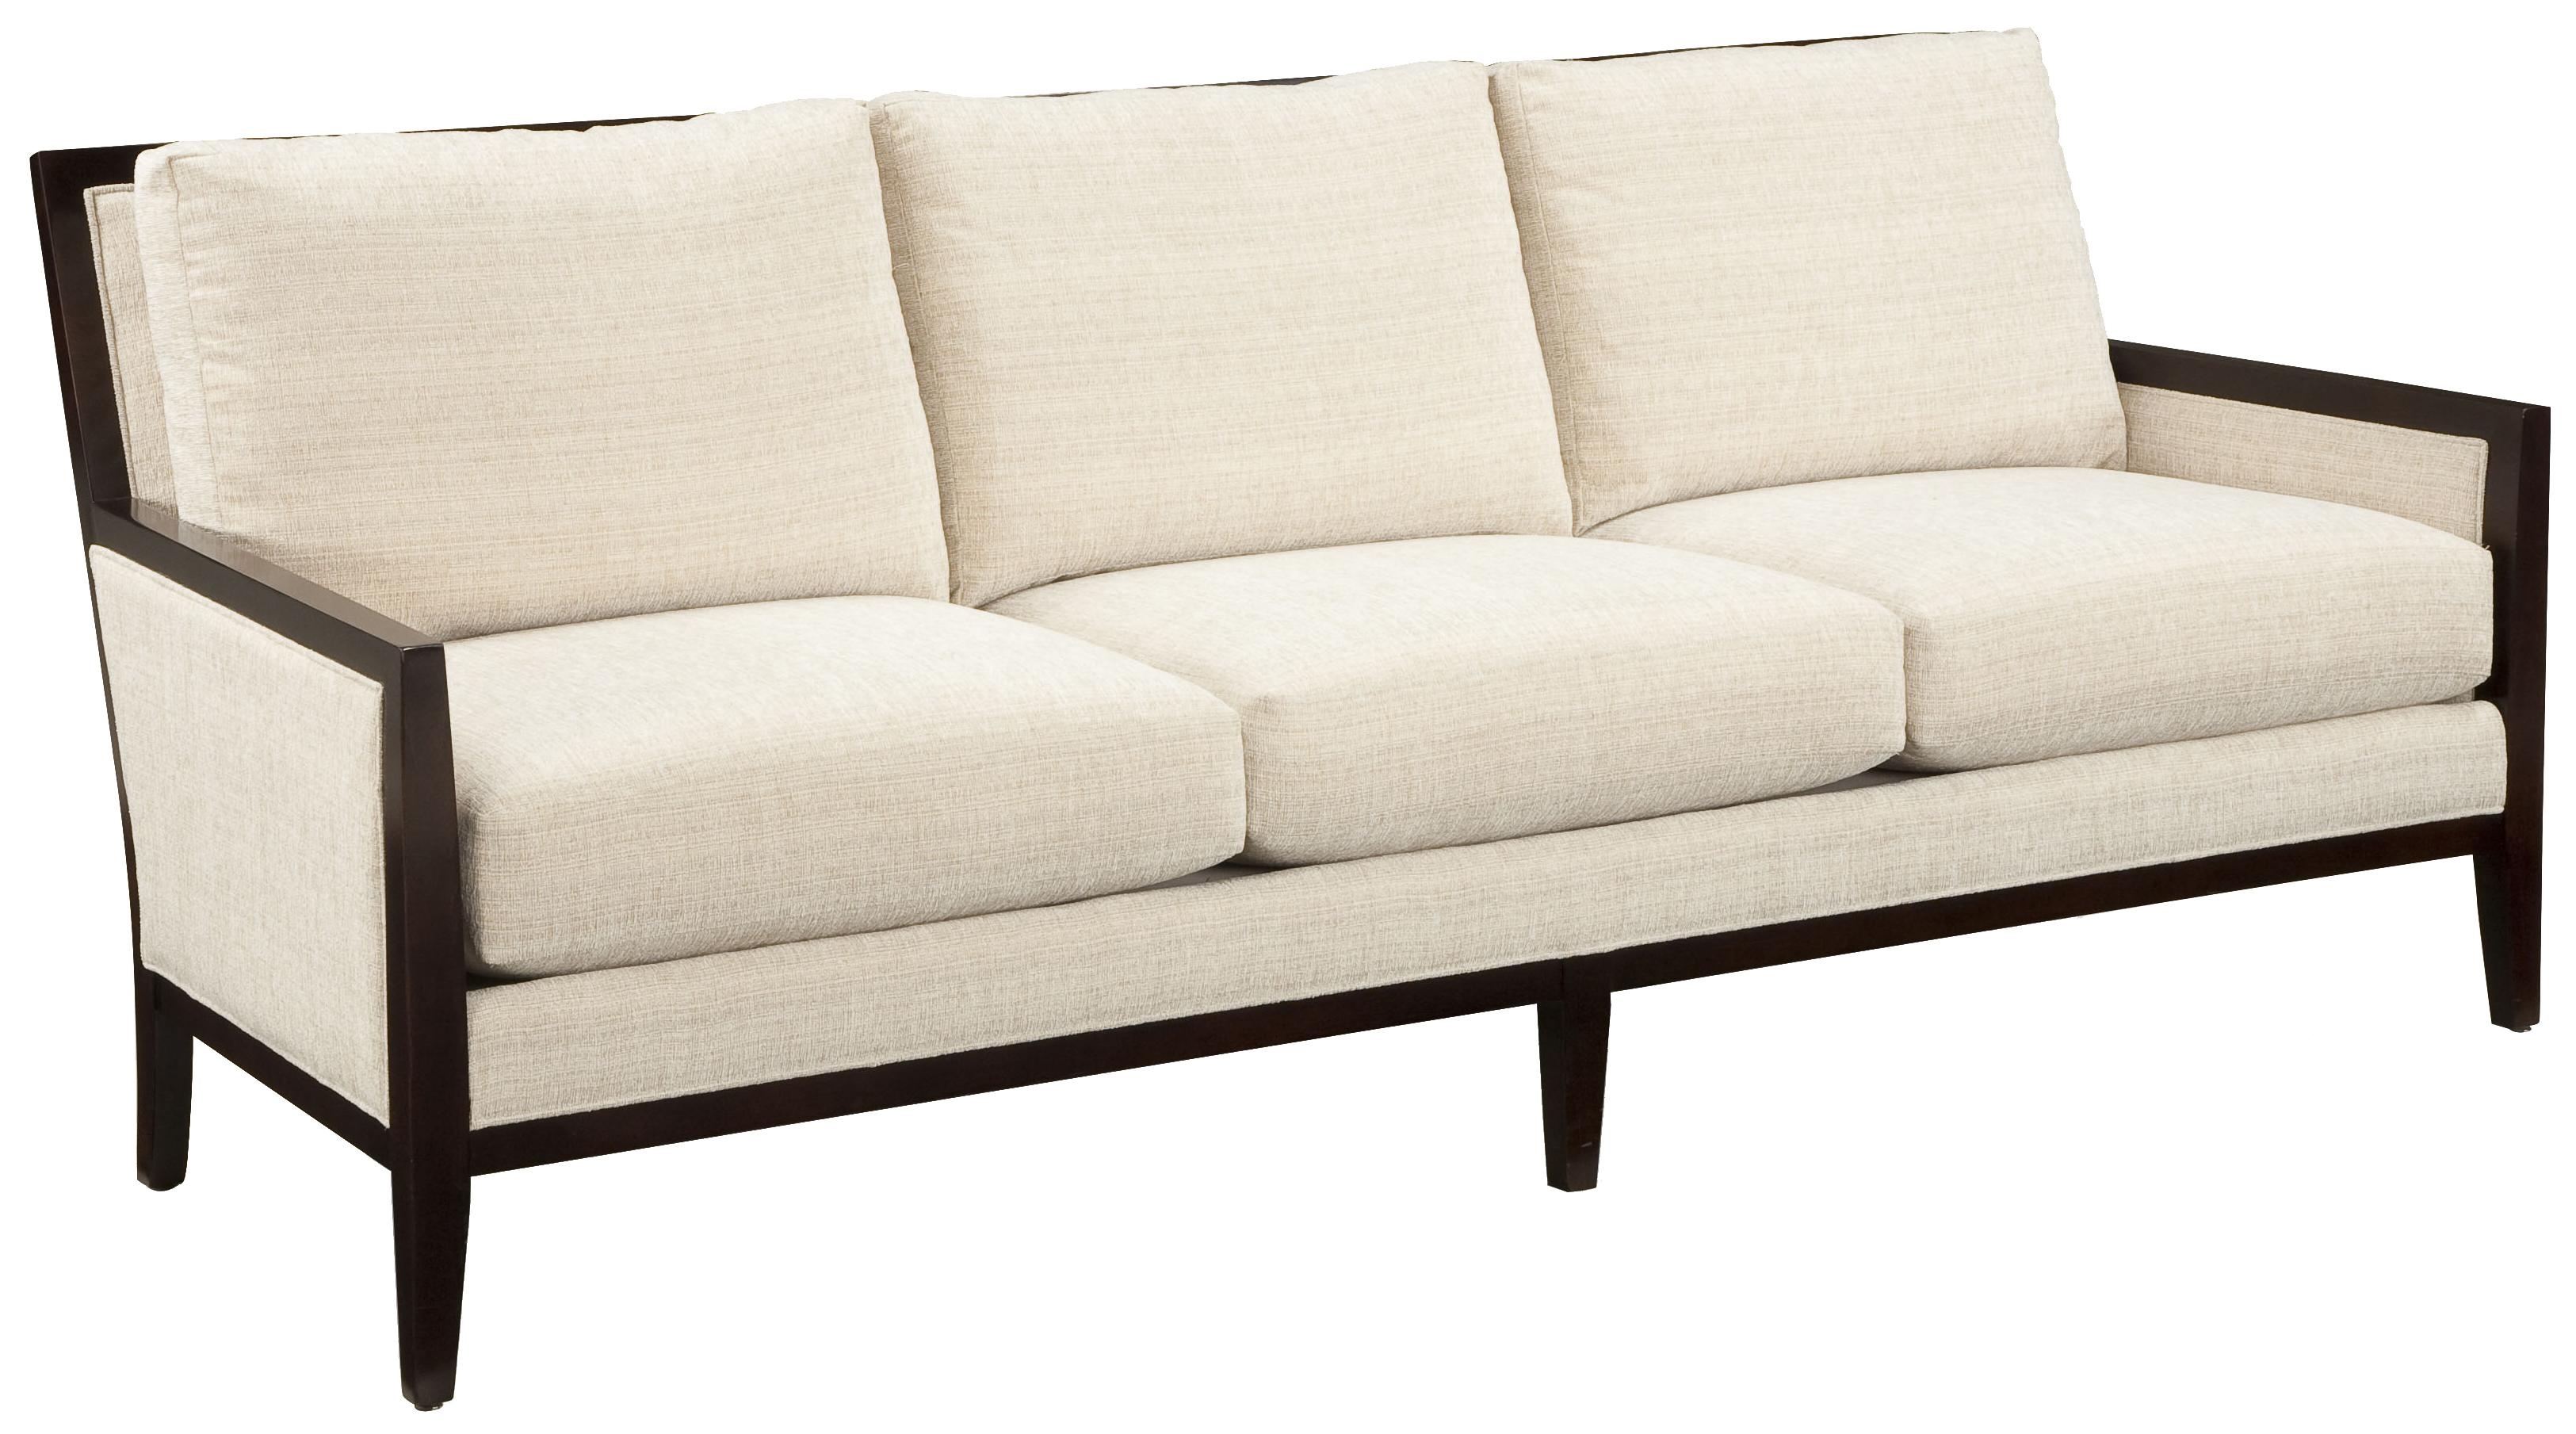 Sofa Accents Contemporary Styled With Traditional Exposed Wood Accent Trim By Fairfield At Lindy S Furniture Company